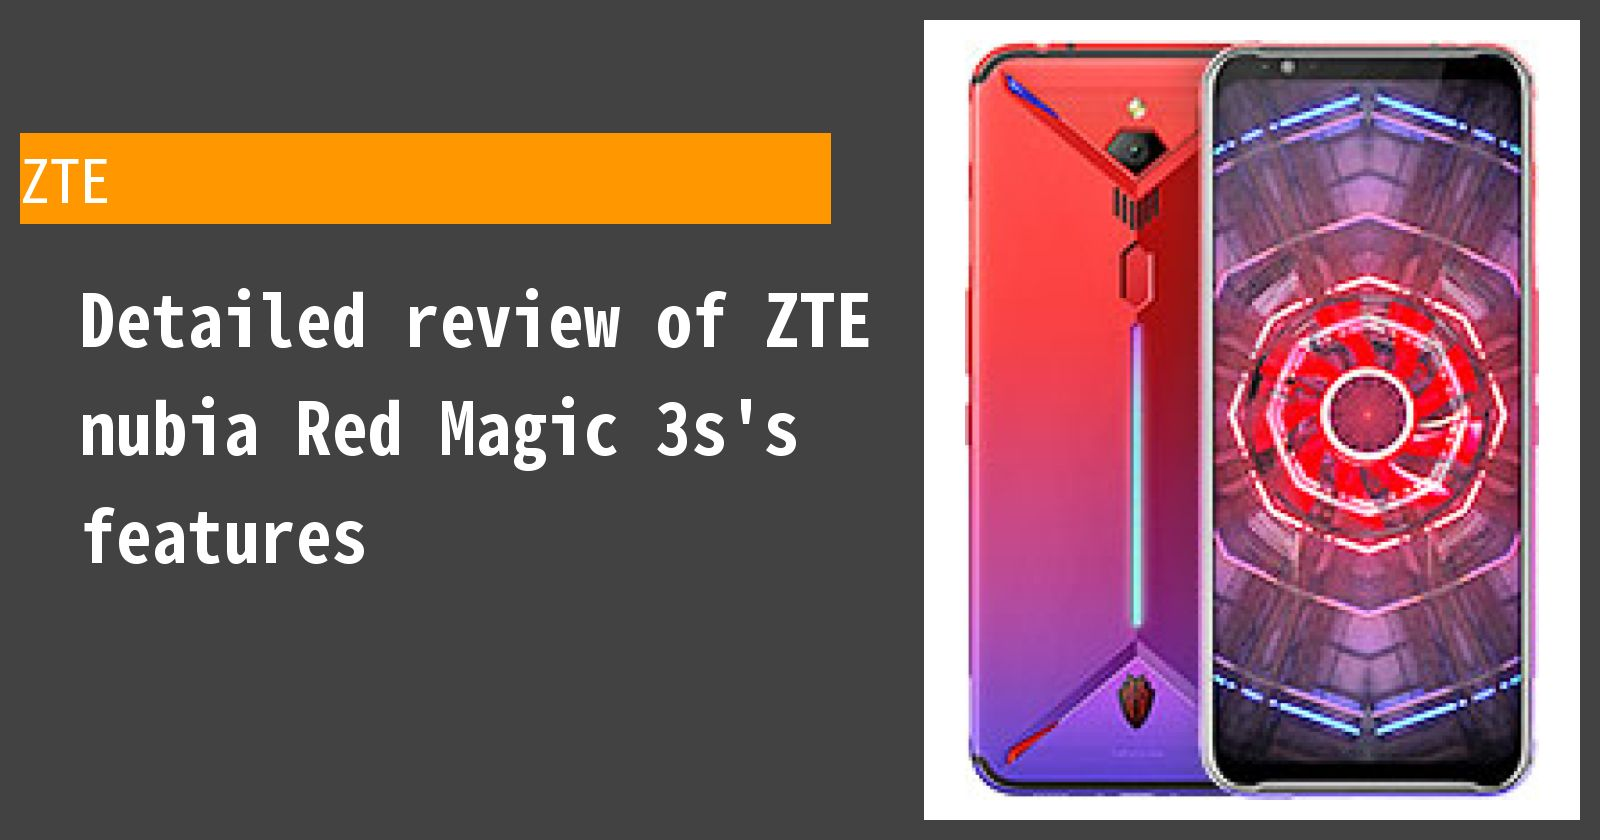 Detailed review of ZTE nubia Red Magic 3s's features